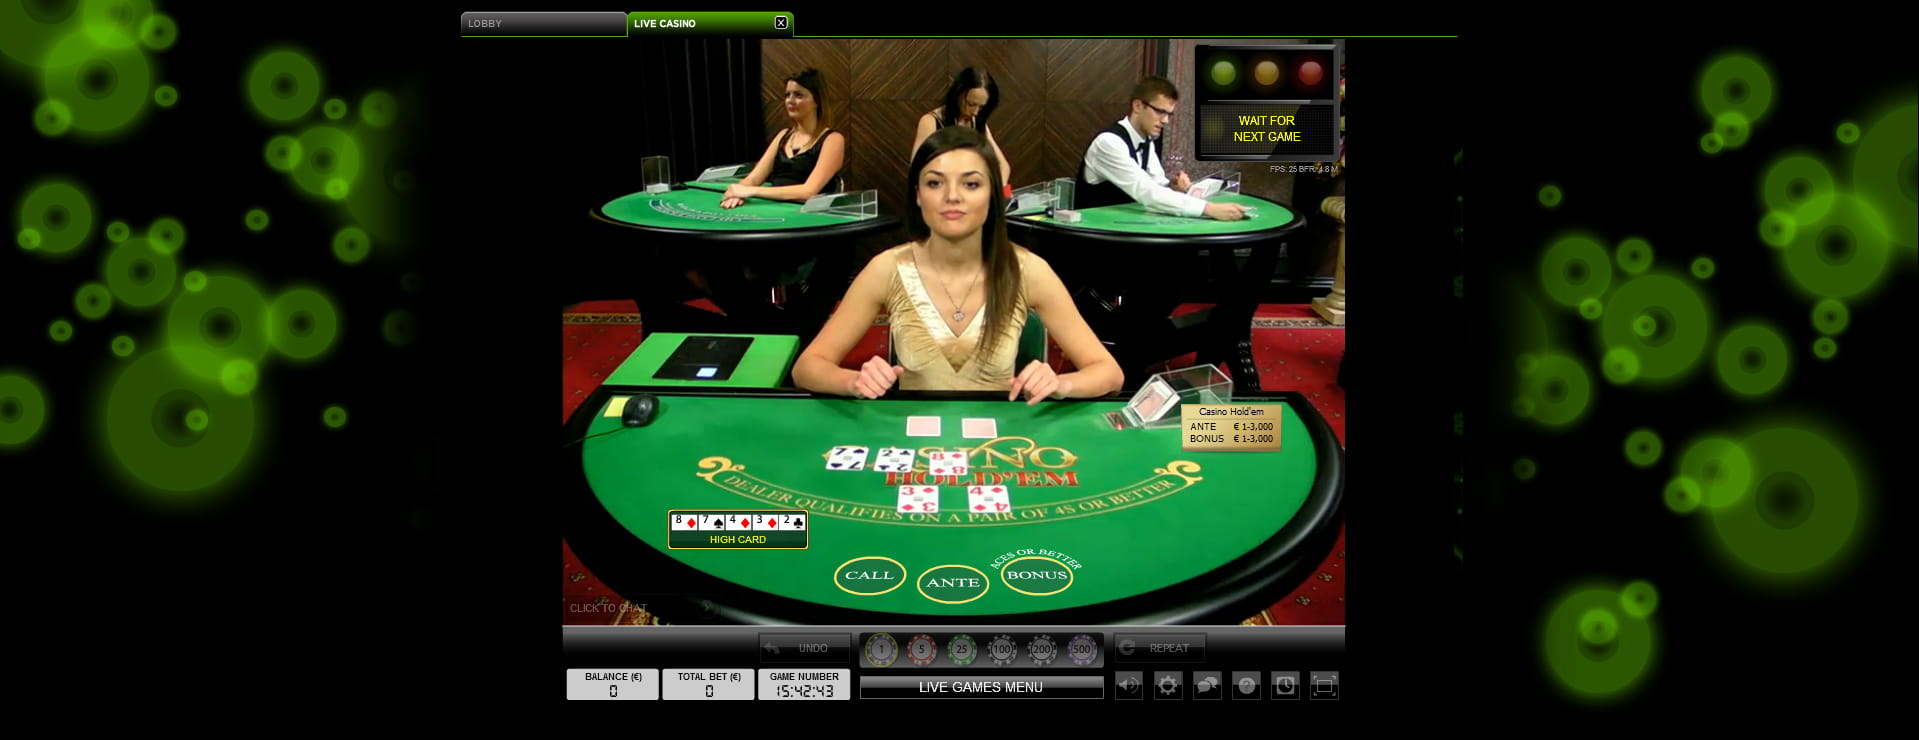 casino poker online royals online